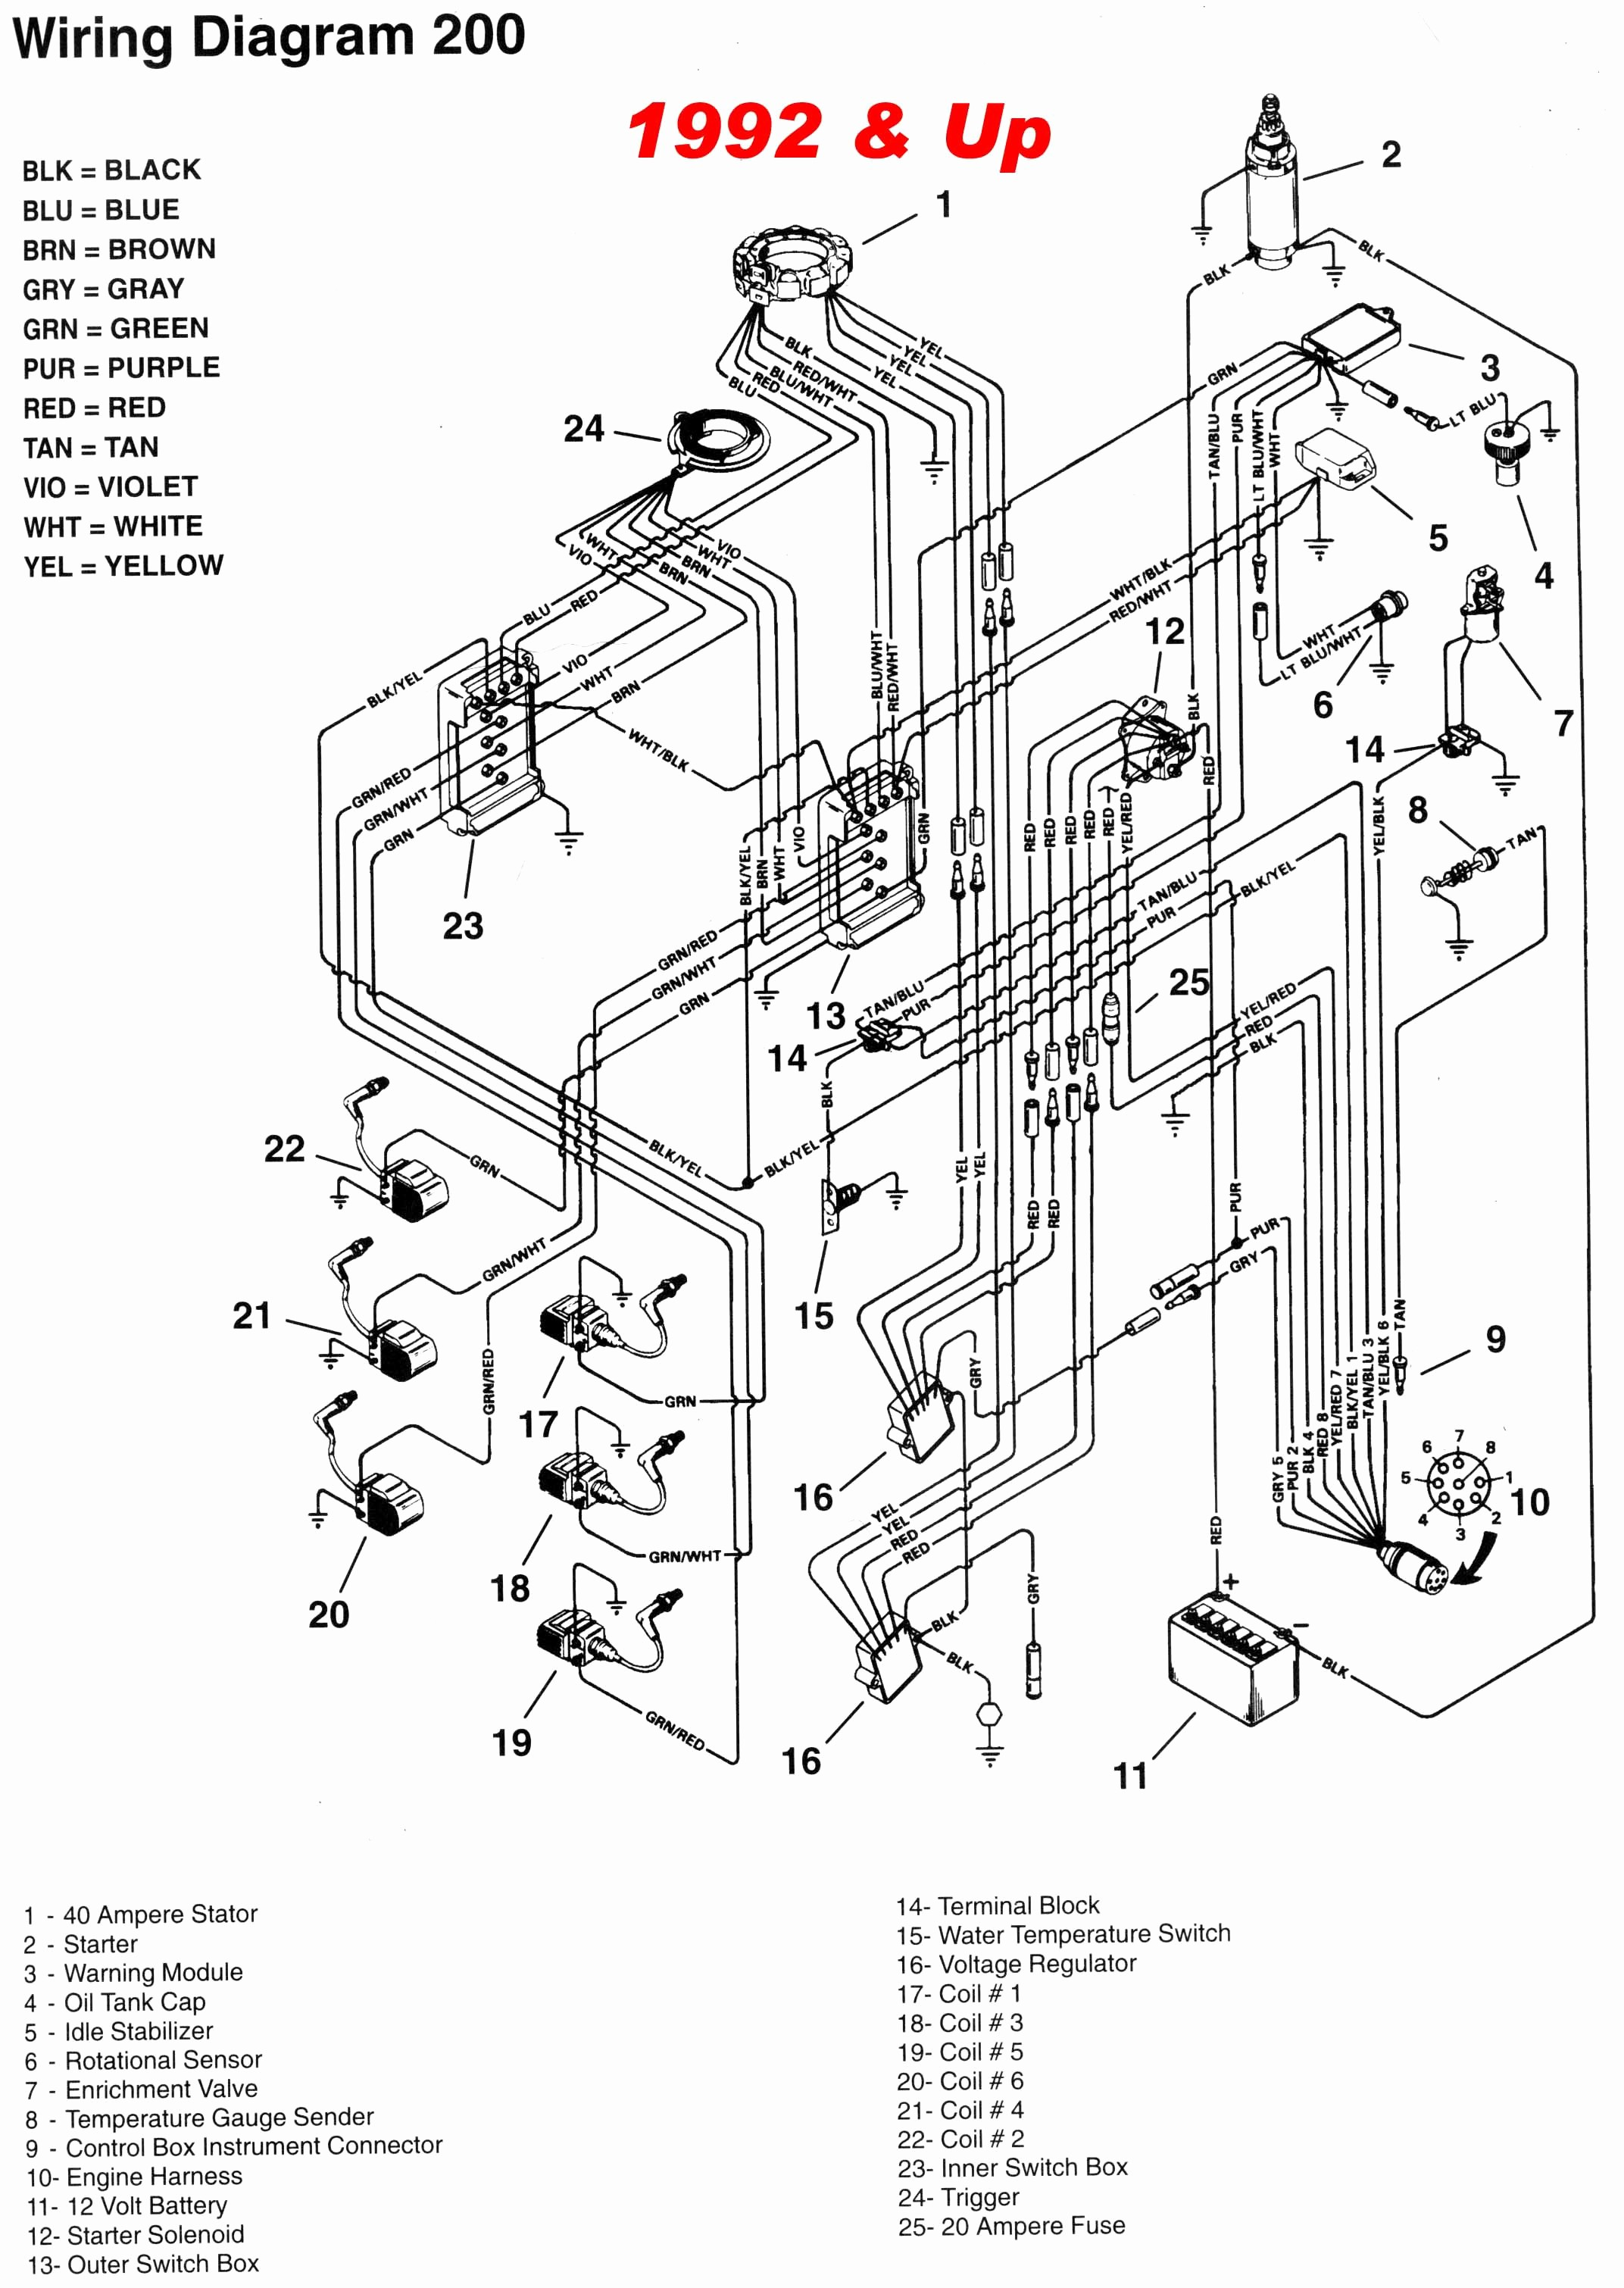 60 Hp Mercury Outboard Parts Diagram | Reviewmotors.co